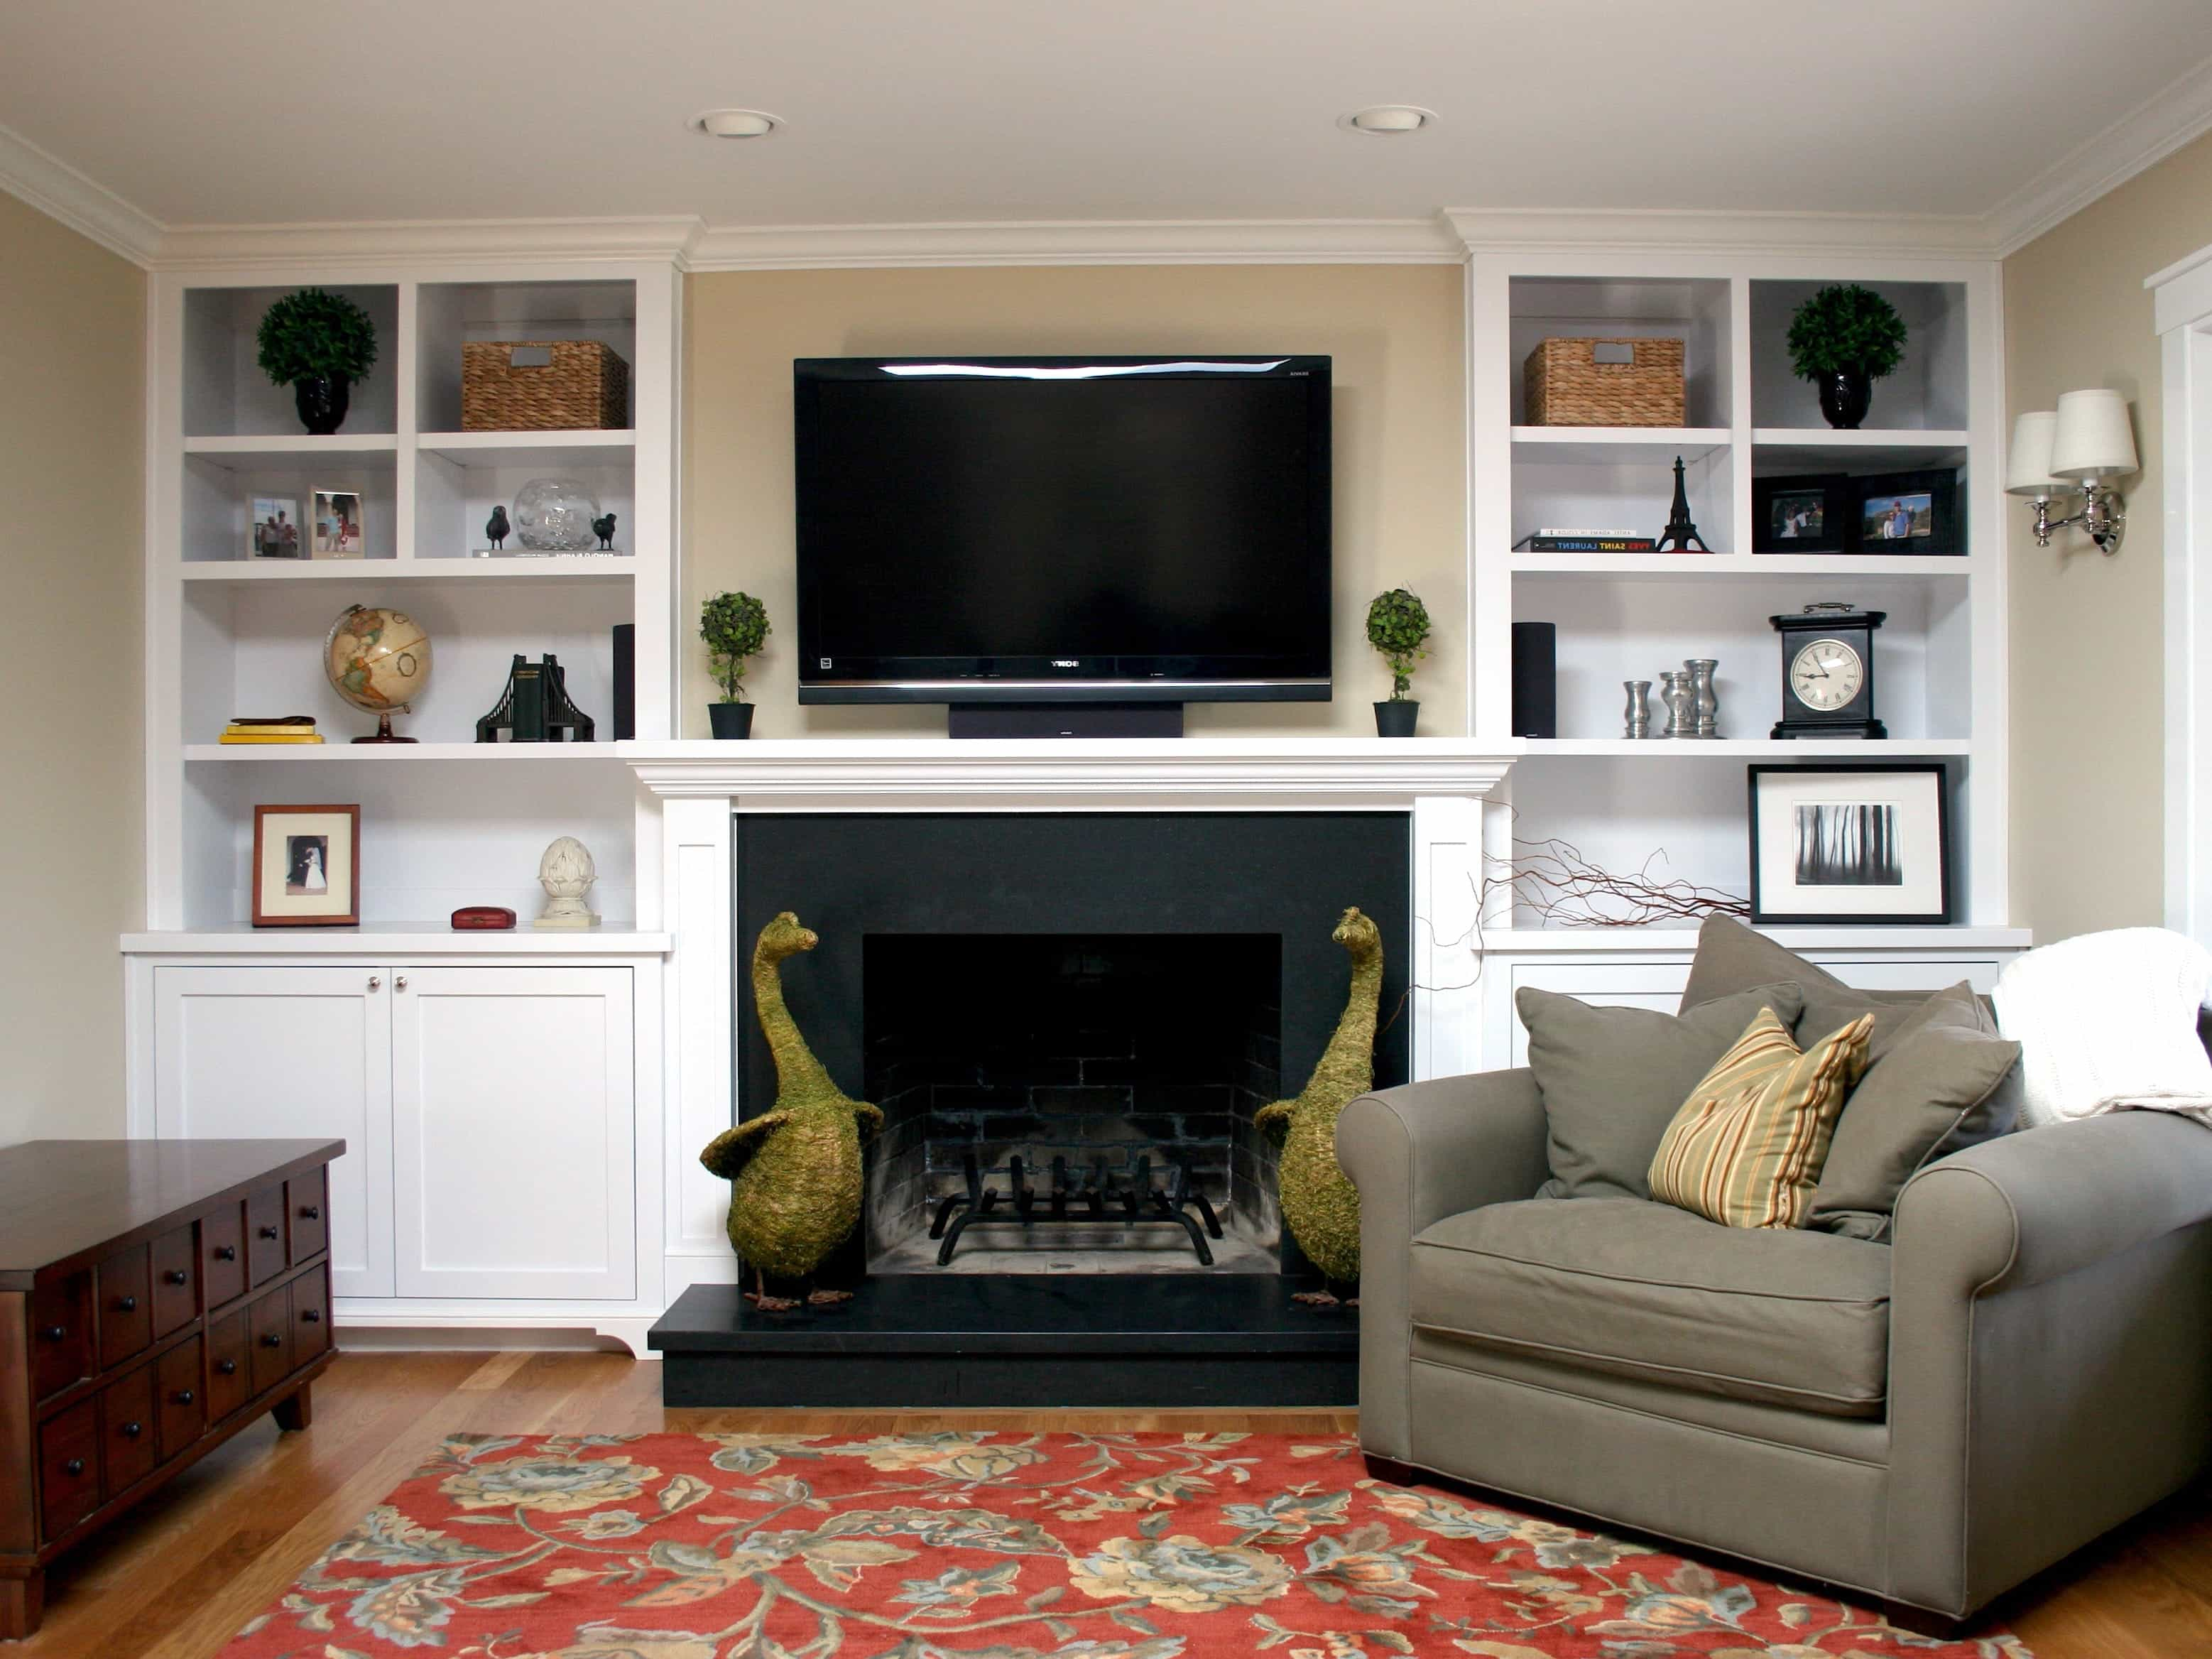 Built In Bookcases And Fireplace In Transitional Living Room (Image 8 of 29)